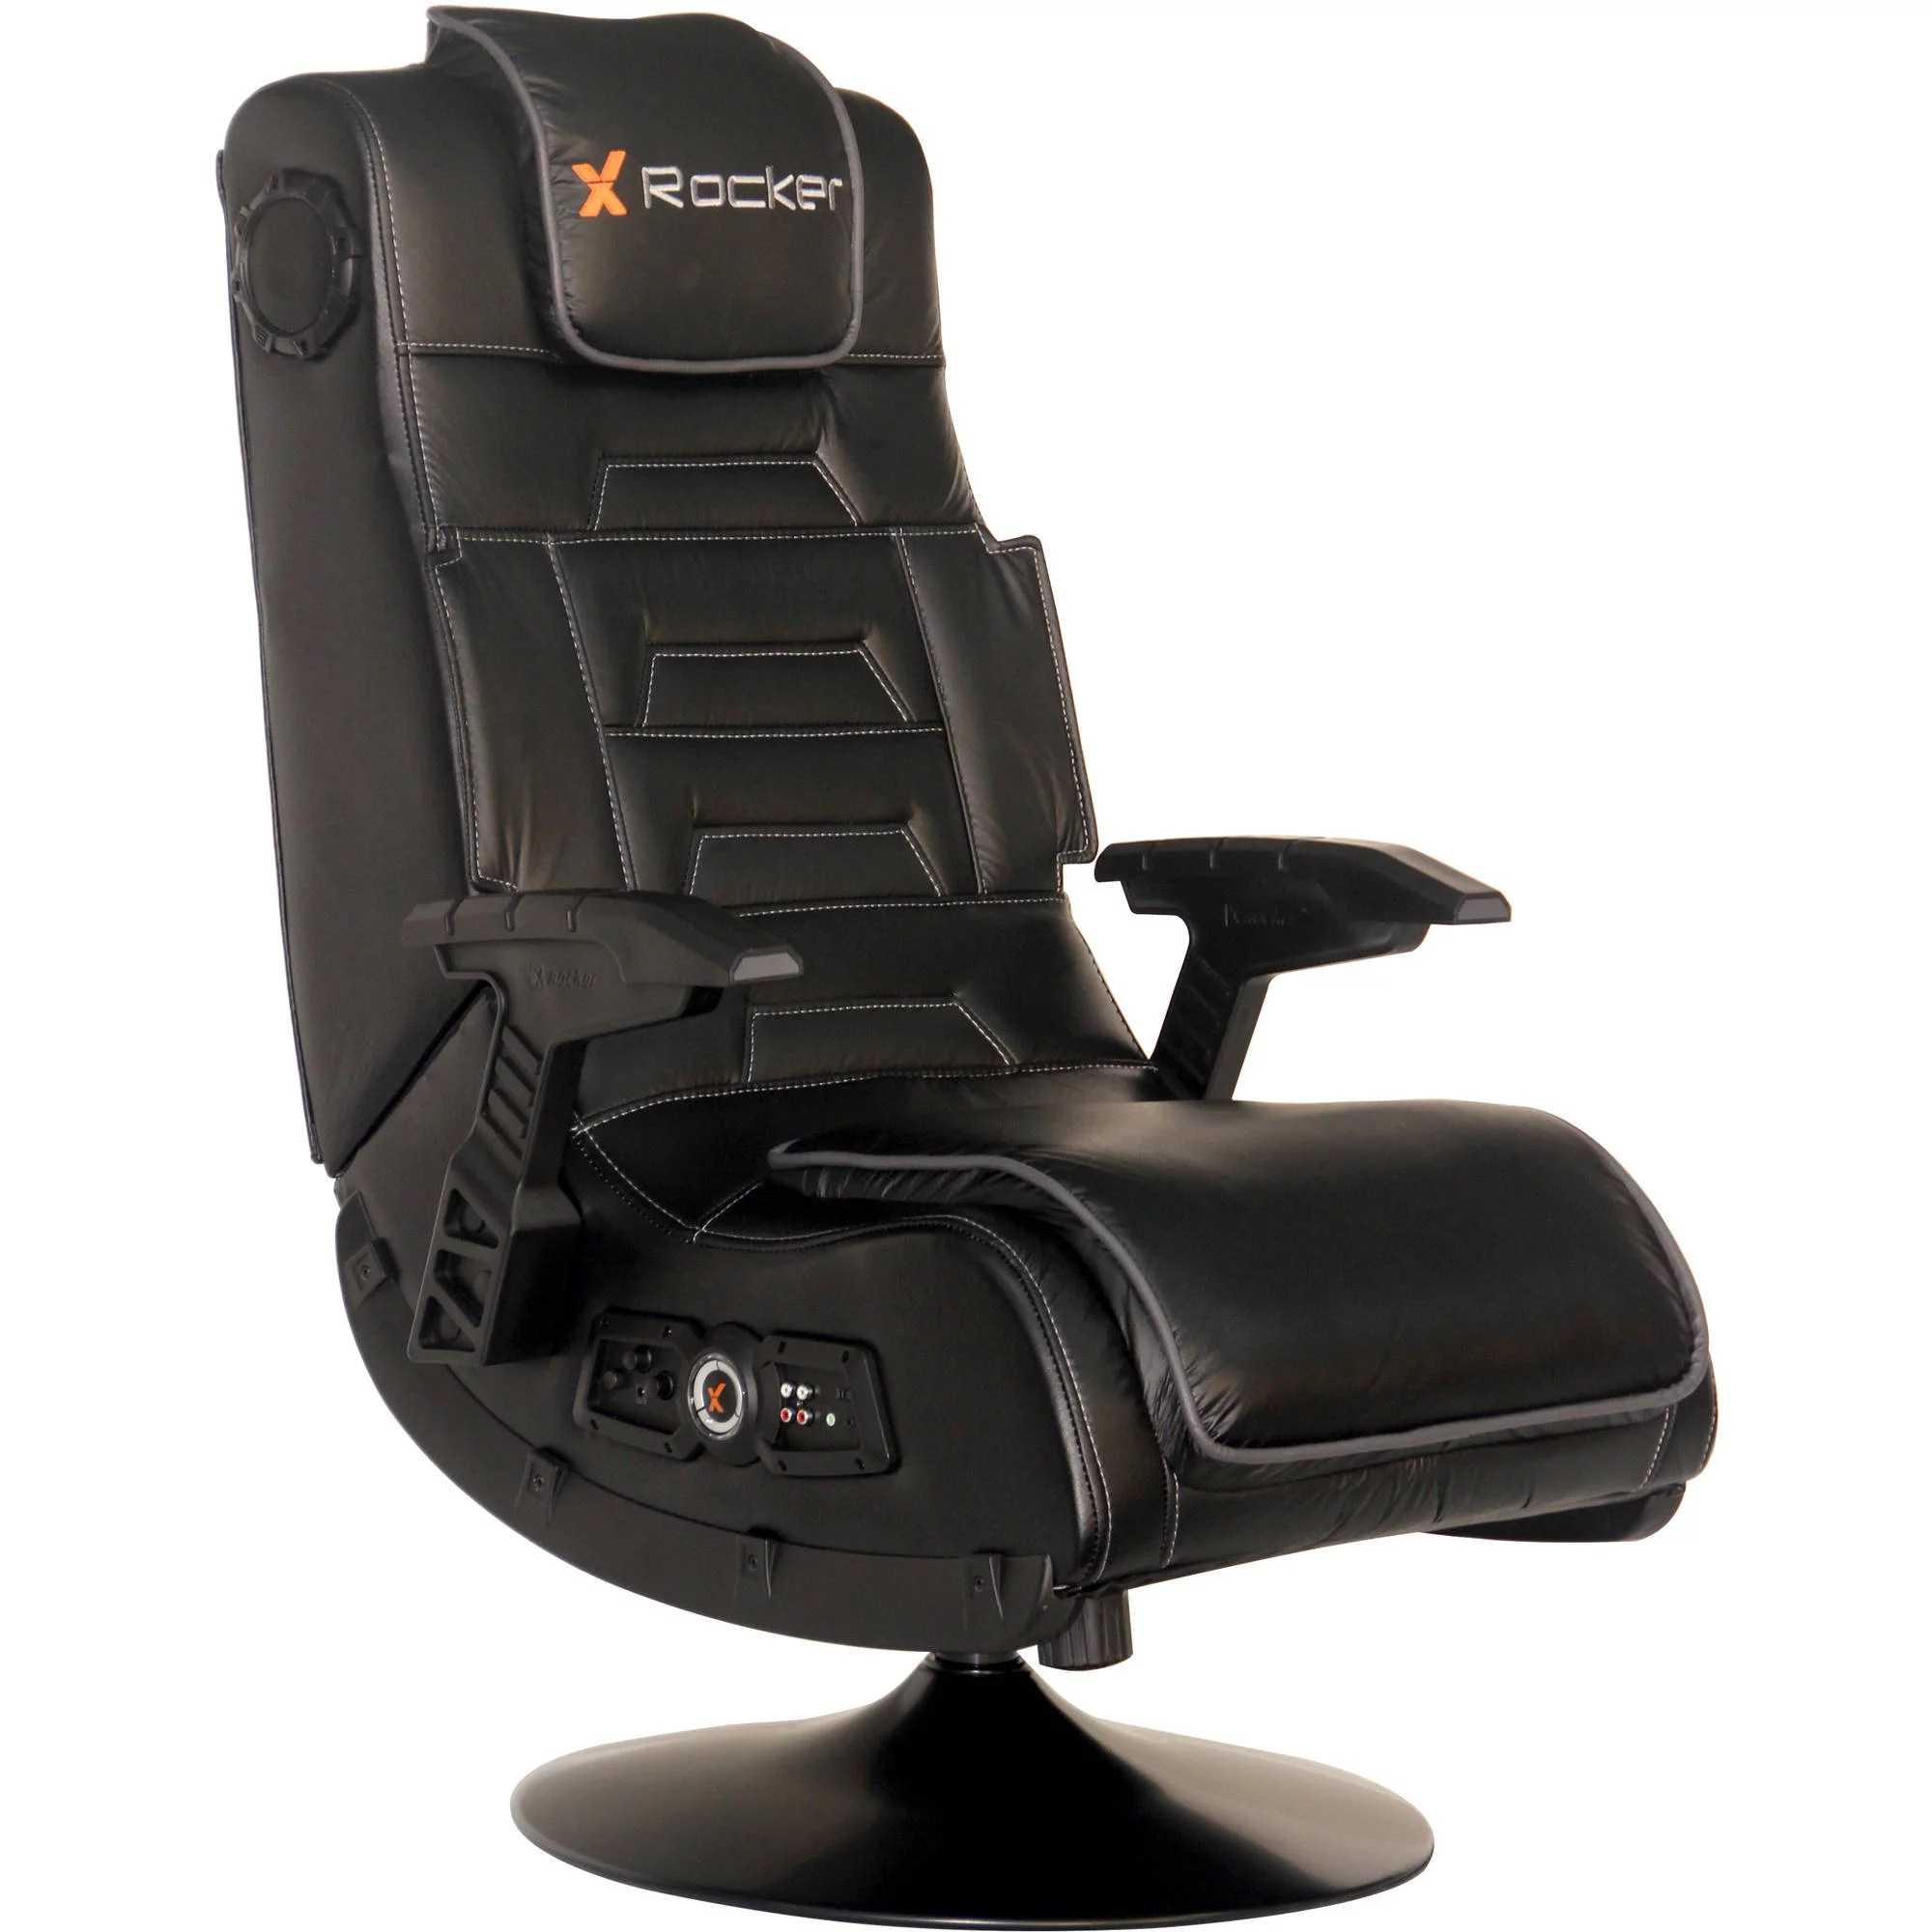 X Video Rocker Pro Series Pedestal 21 Wireless Audio